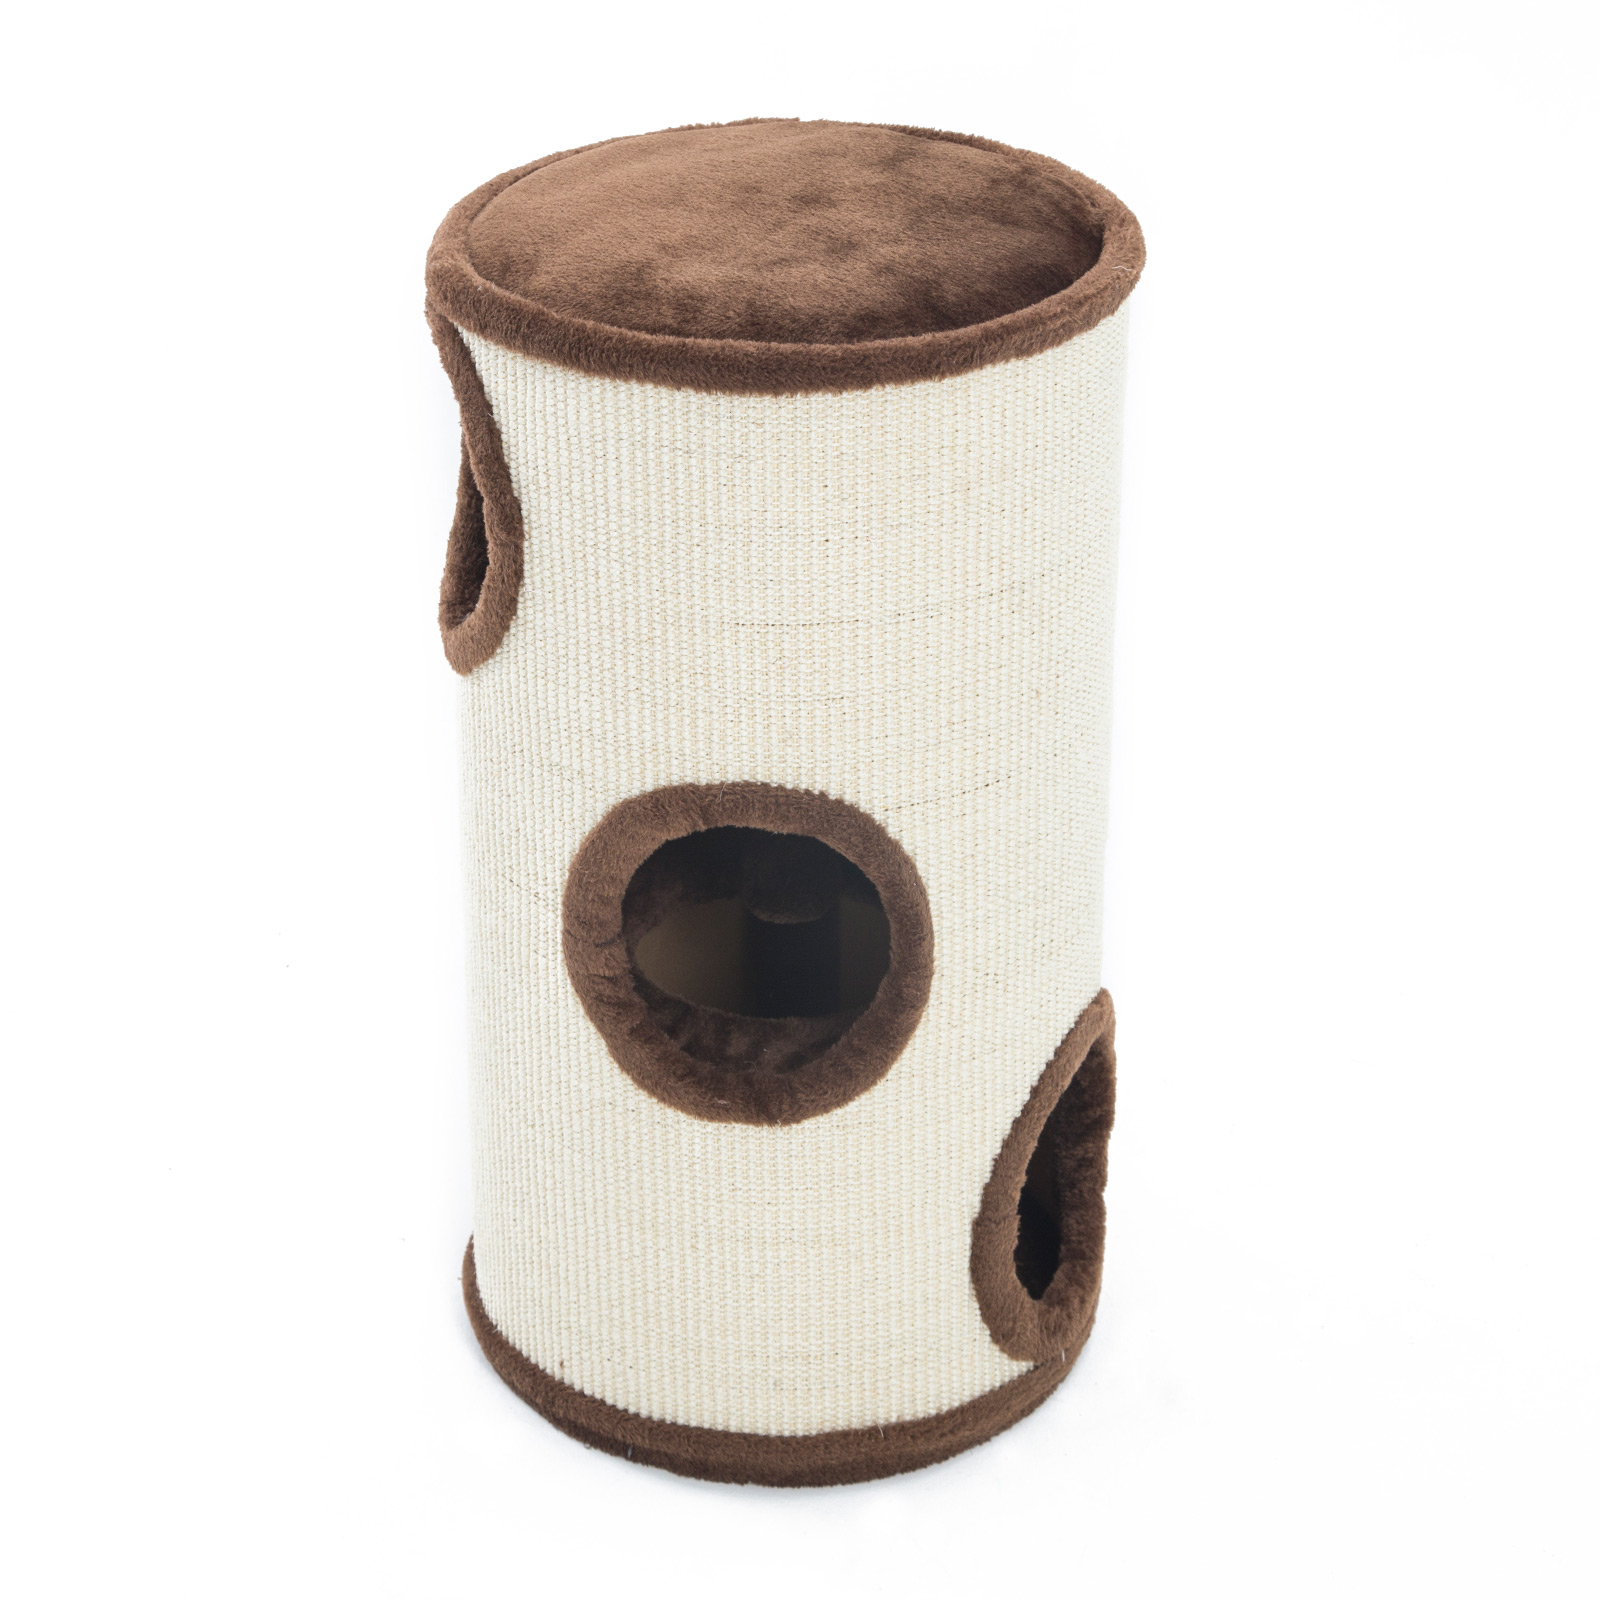 70cm Cat Tree Scratcher TUBU - BROWN